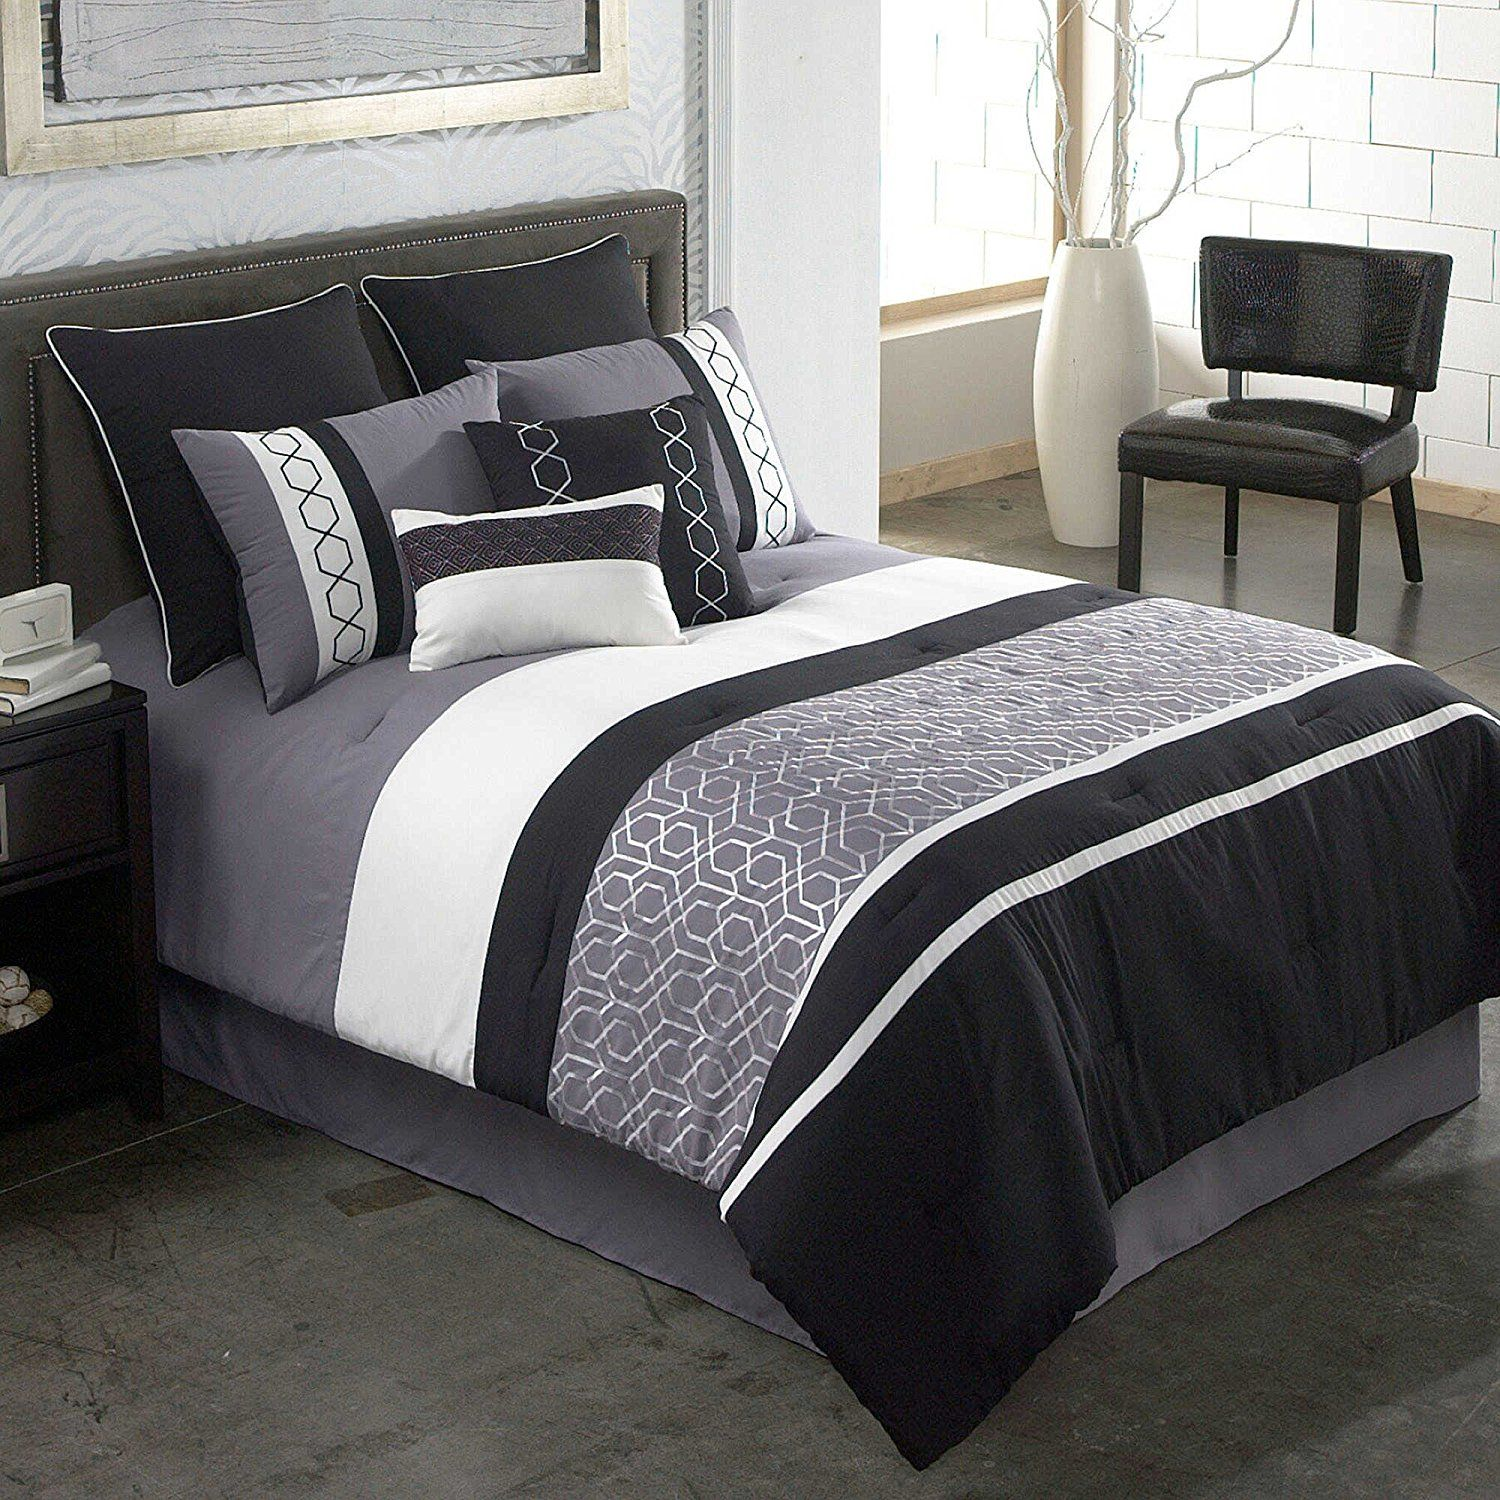 Modern Elegant Luxury Striped Patterned Bedding Hotel Bed Black Grey